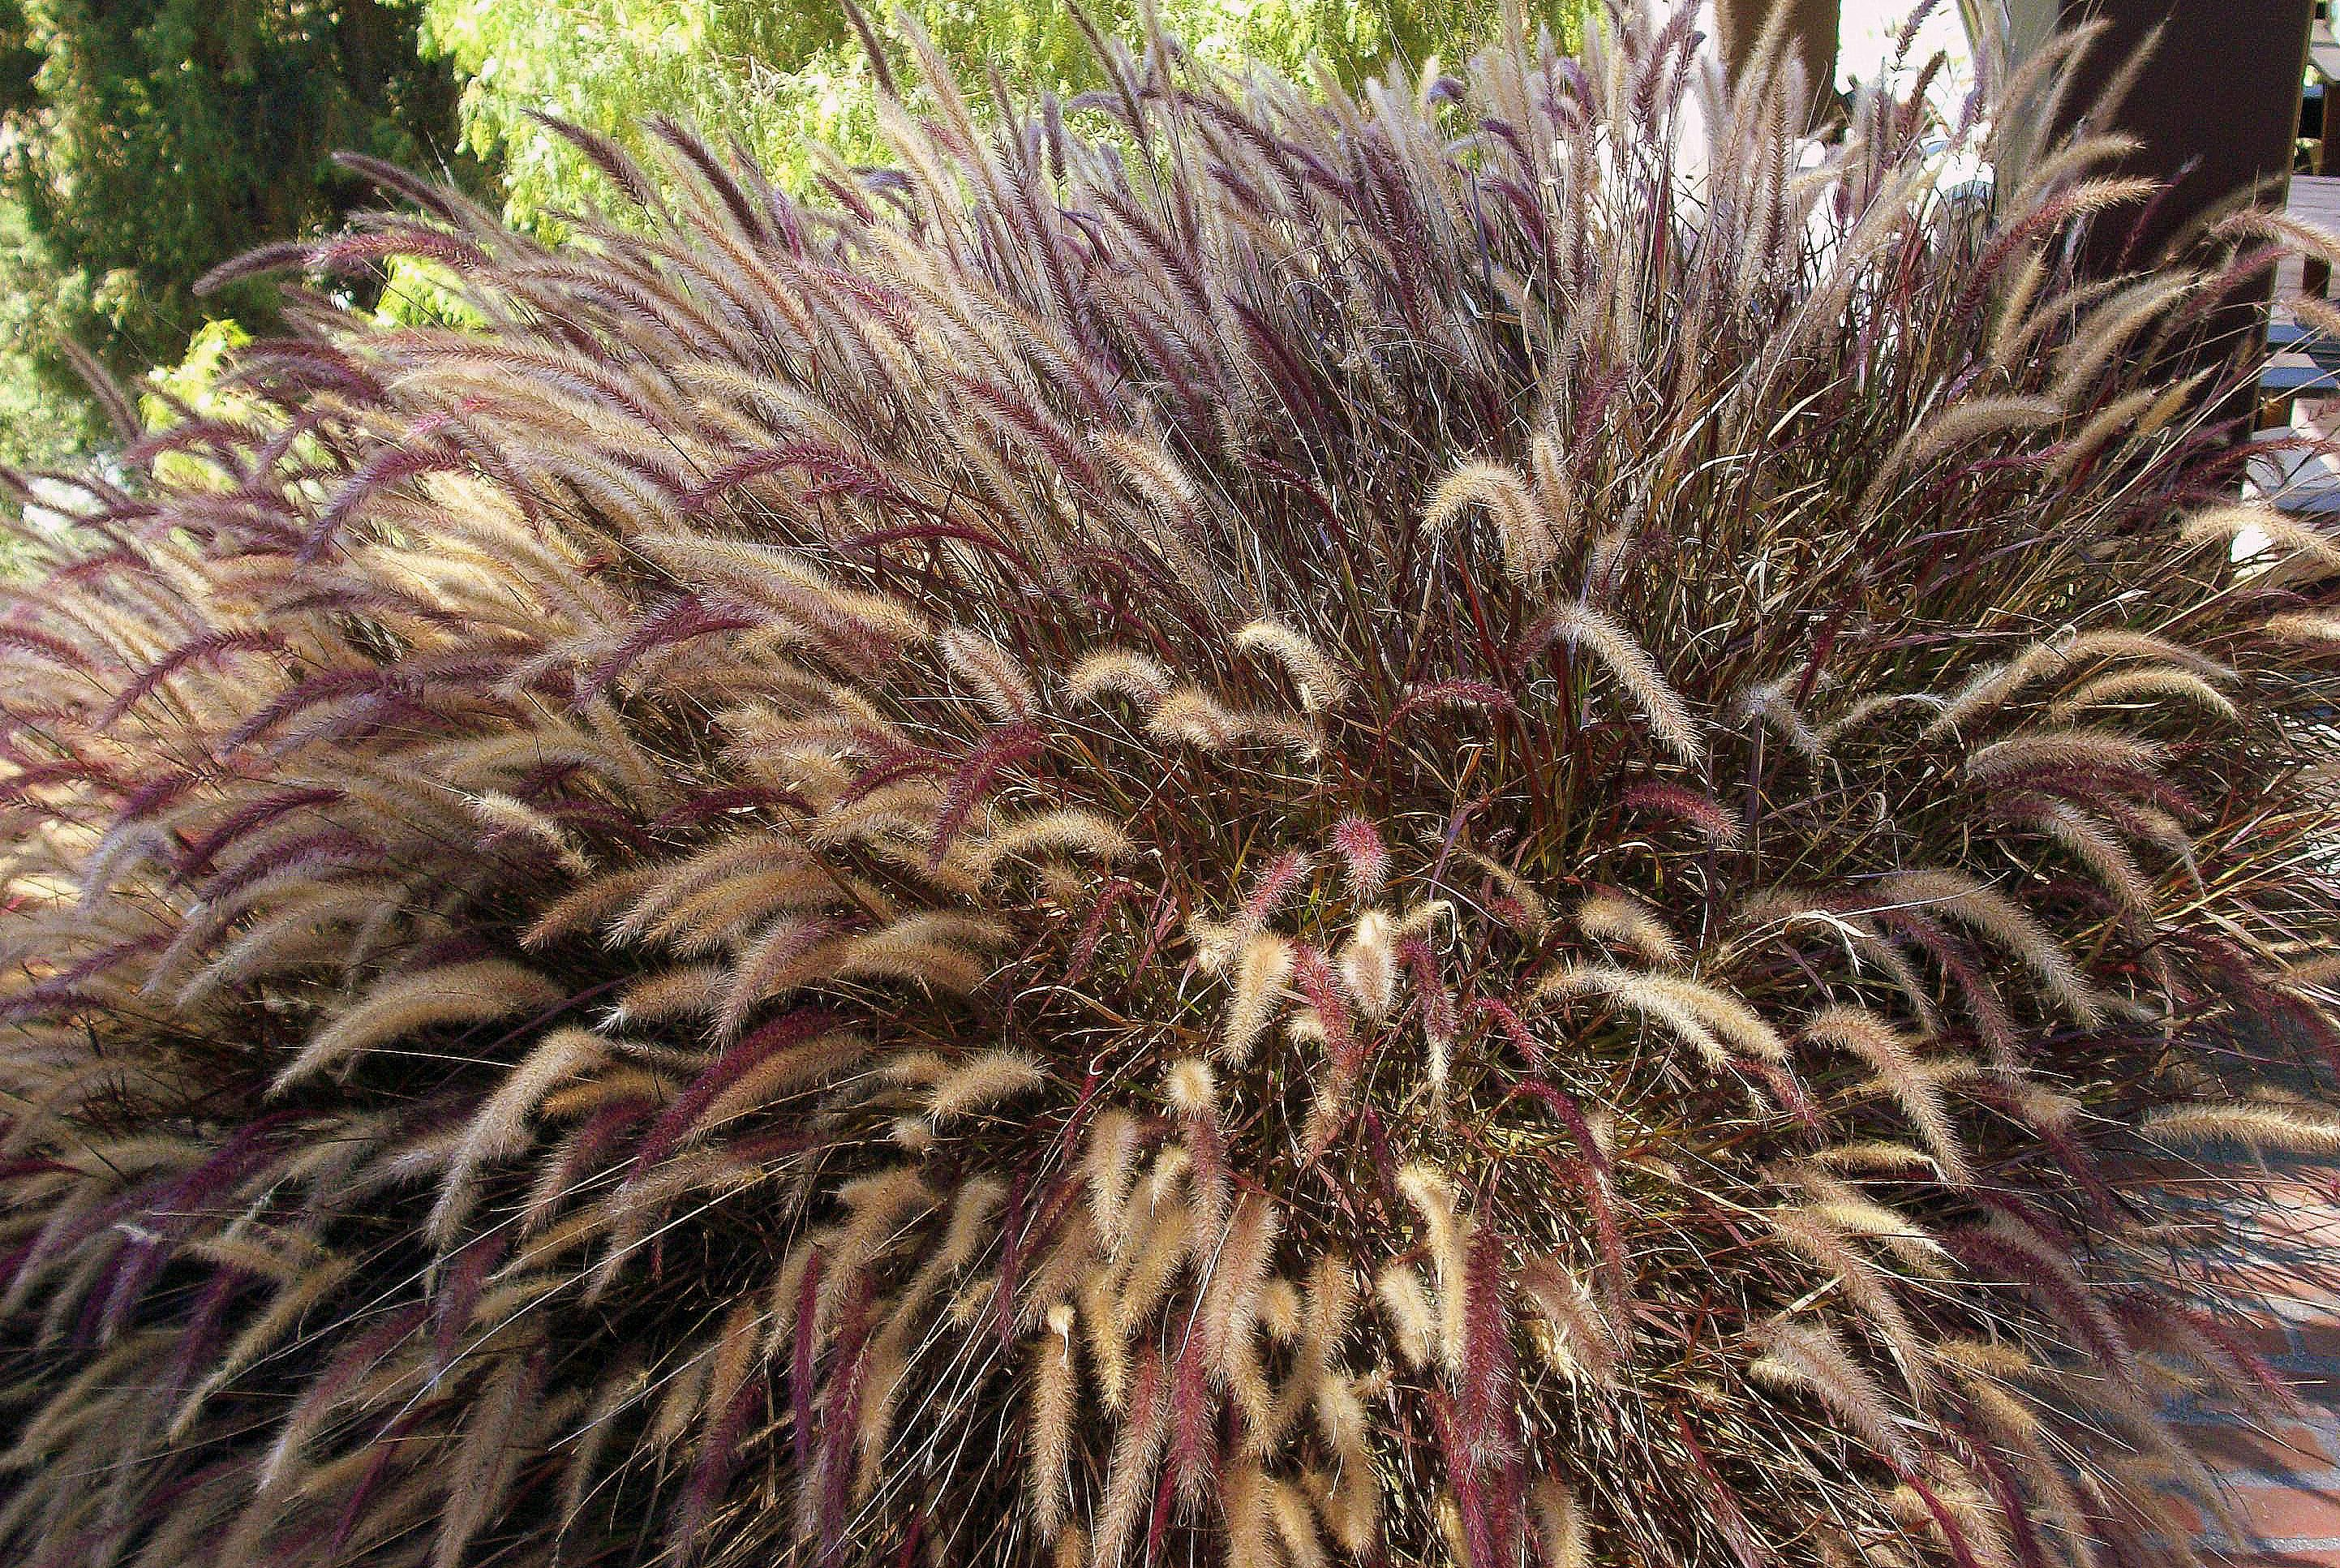 fountain grass (Pennisteum setacum) and its fluffy tails.